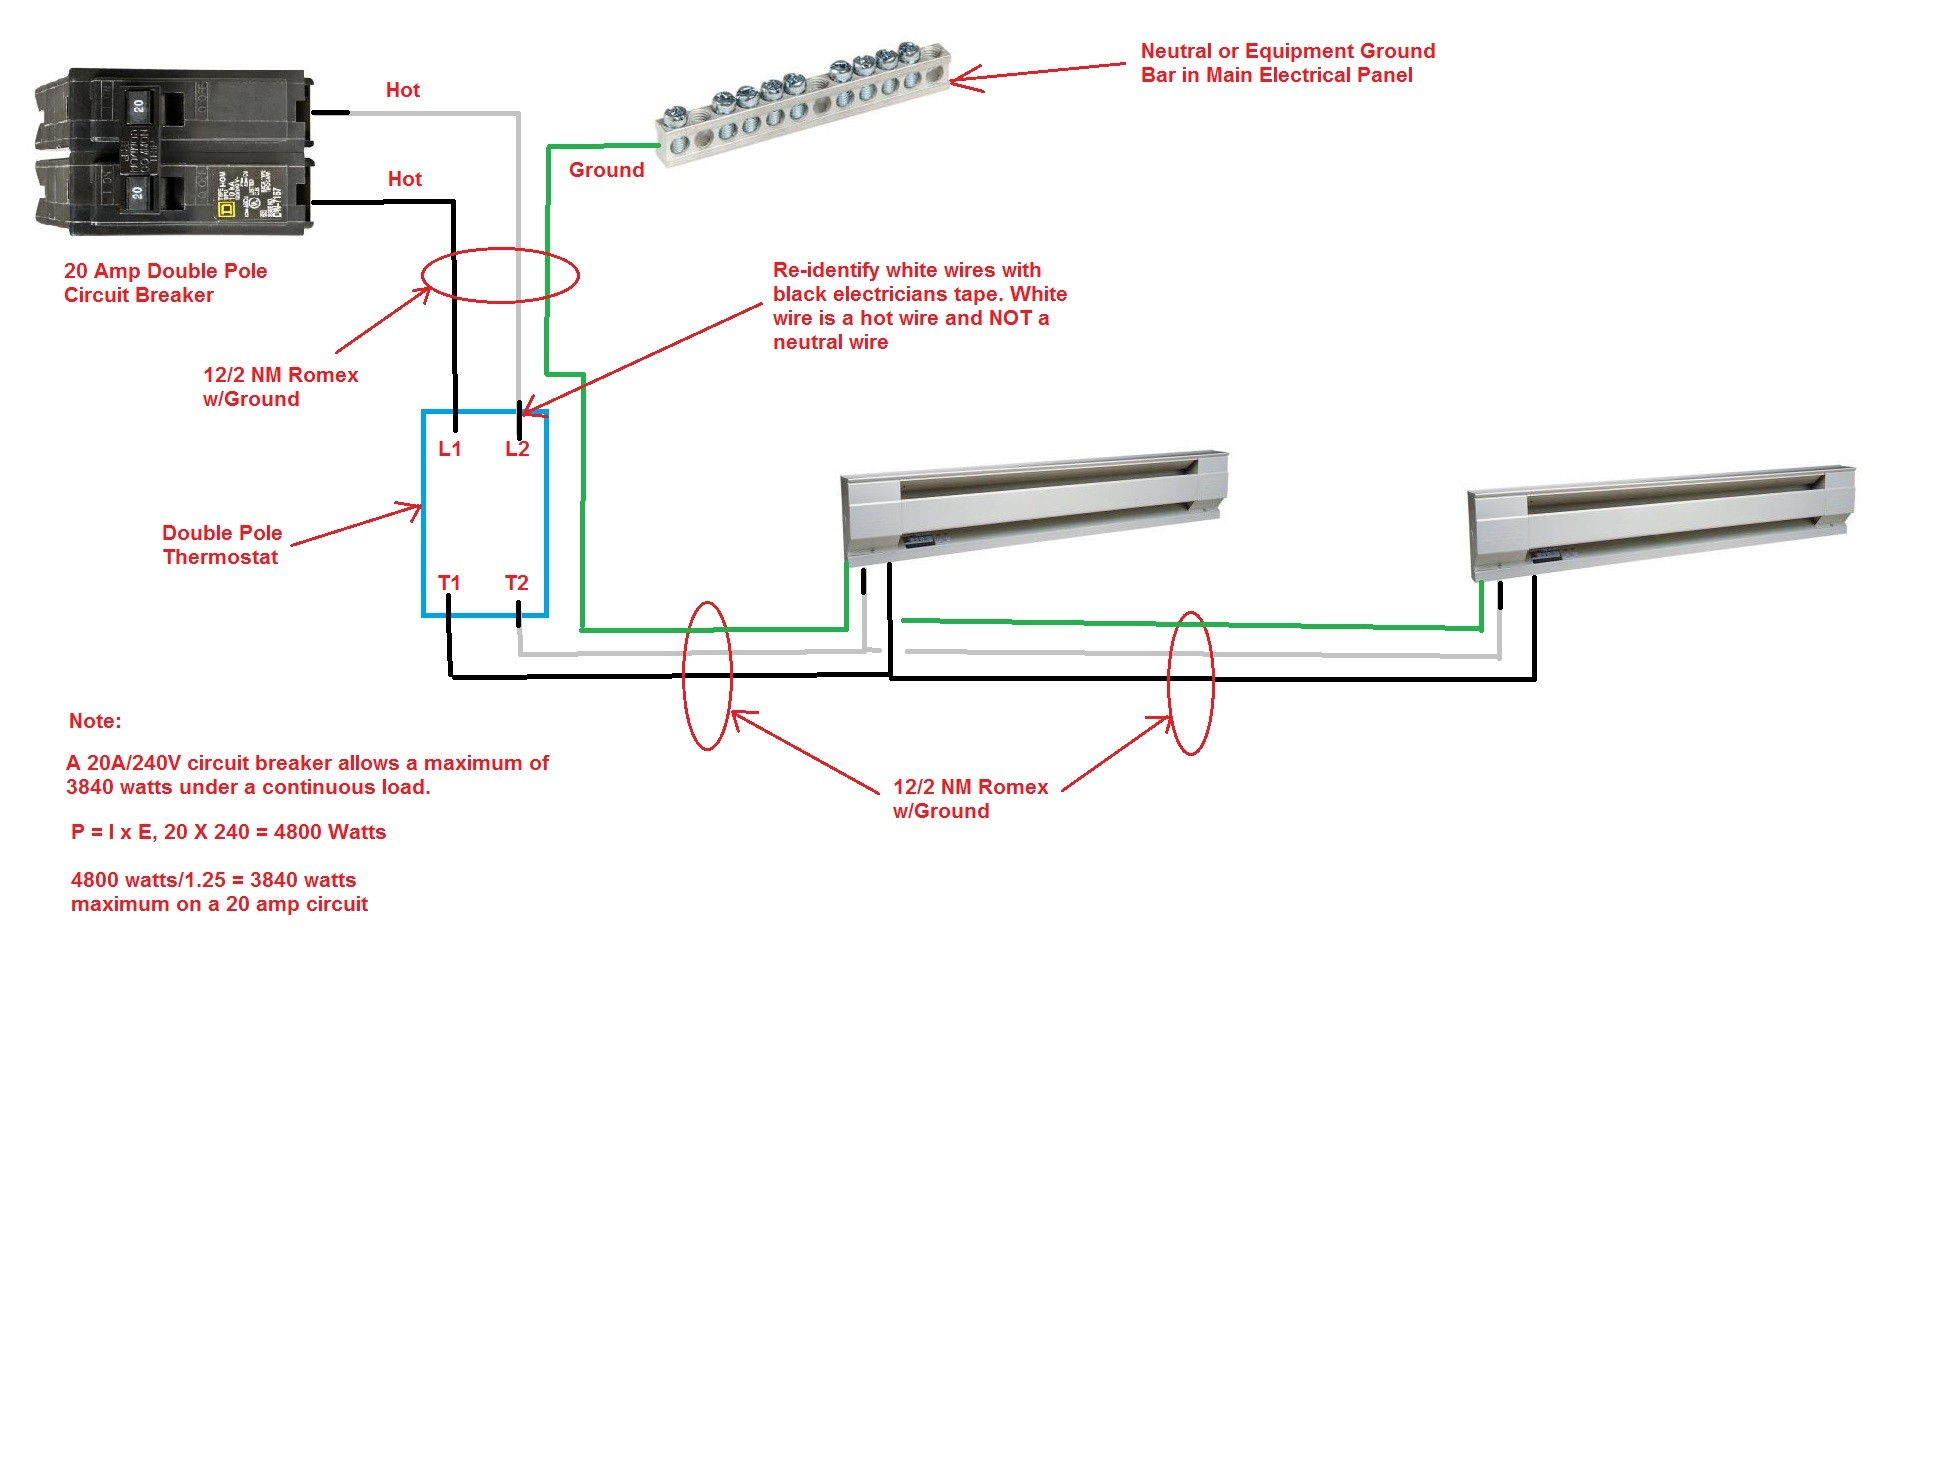 Electric Heat Wiring Diagram Cabot Electric Baseboard Wiring Diagram Wiring Diagram Paper Of Electric Heat Wiring Diagram